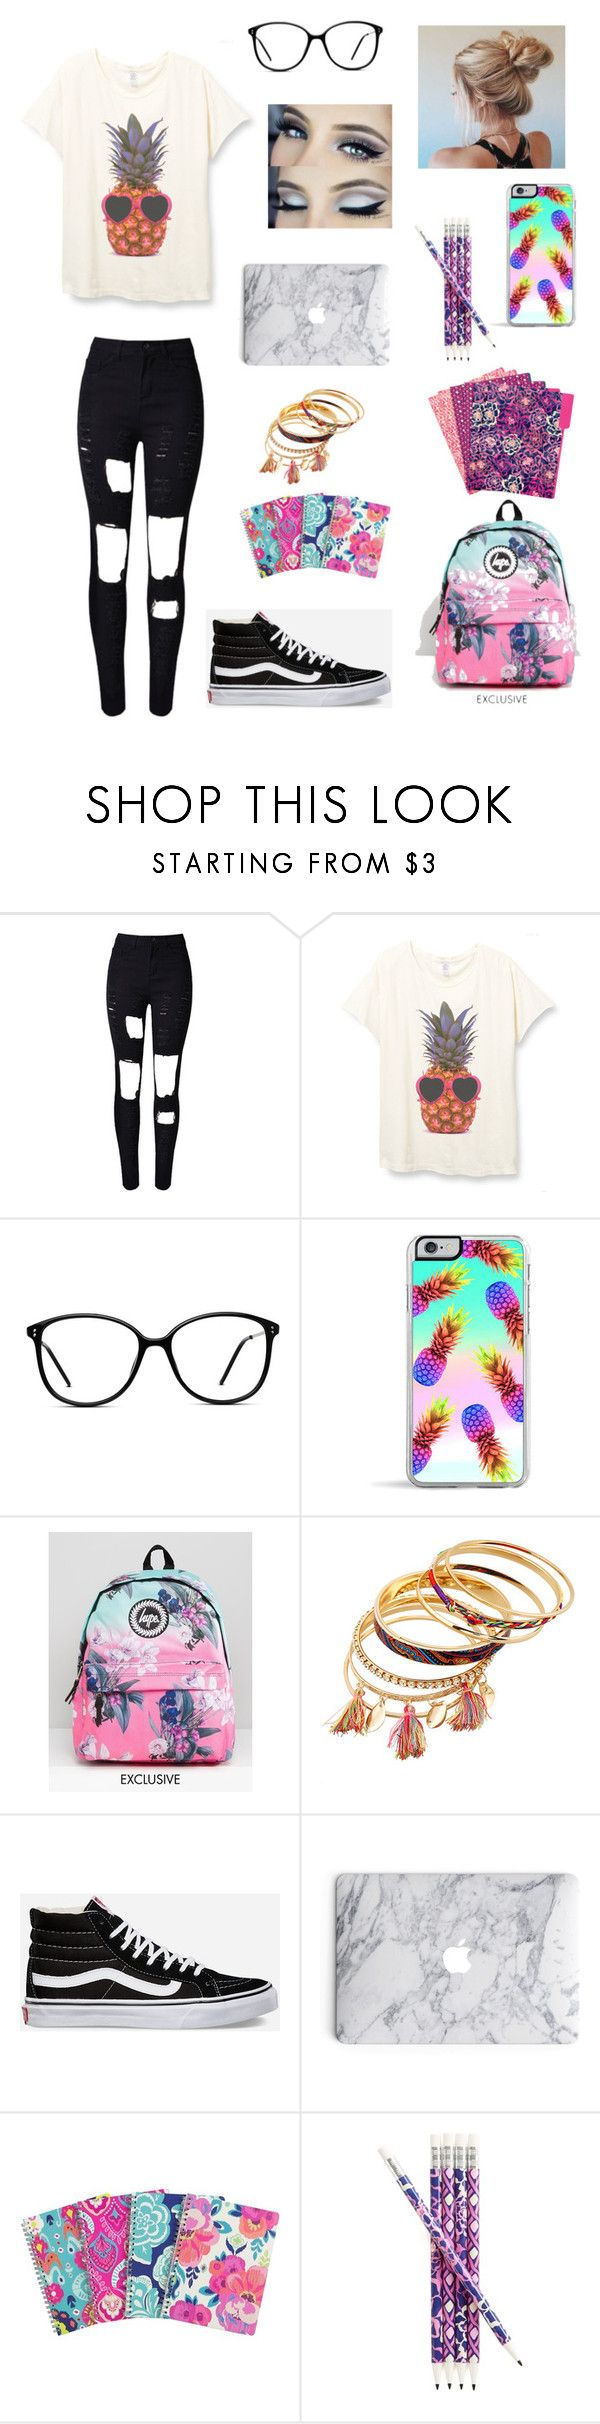 """""""Sophomore year of college"""" by bdunsieth on Polyvore featuring WithChic, GlassesUSA, Forever 21, Hype, Vans and Vera Bradley"""